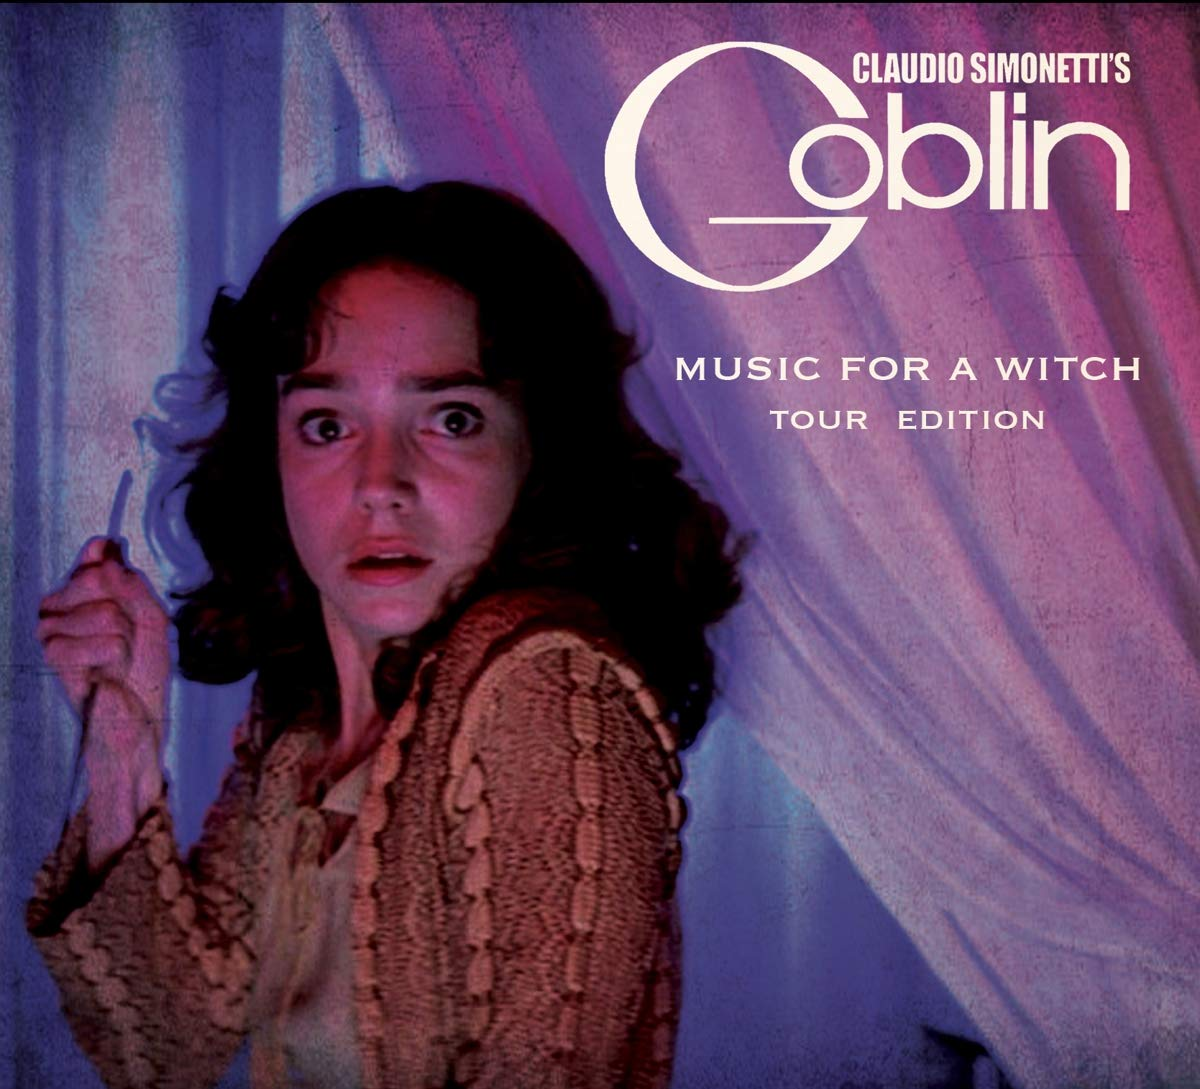 Music for a witch (tour edition) (2018) (vinile)